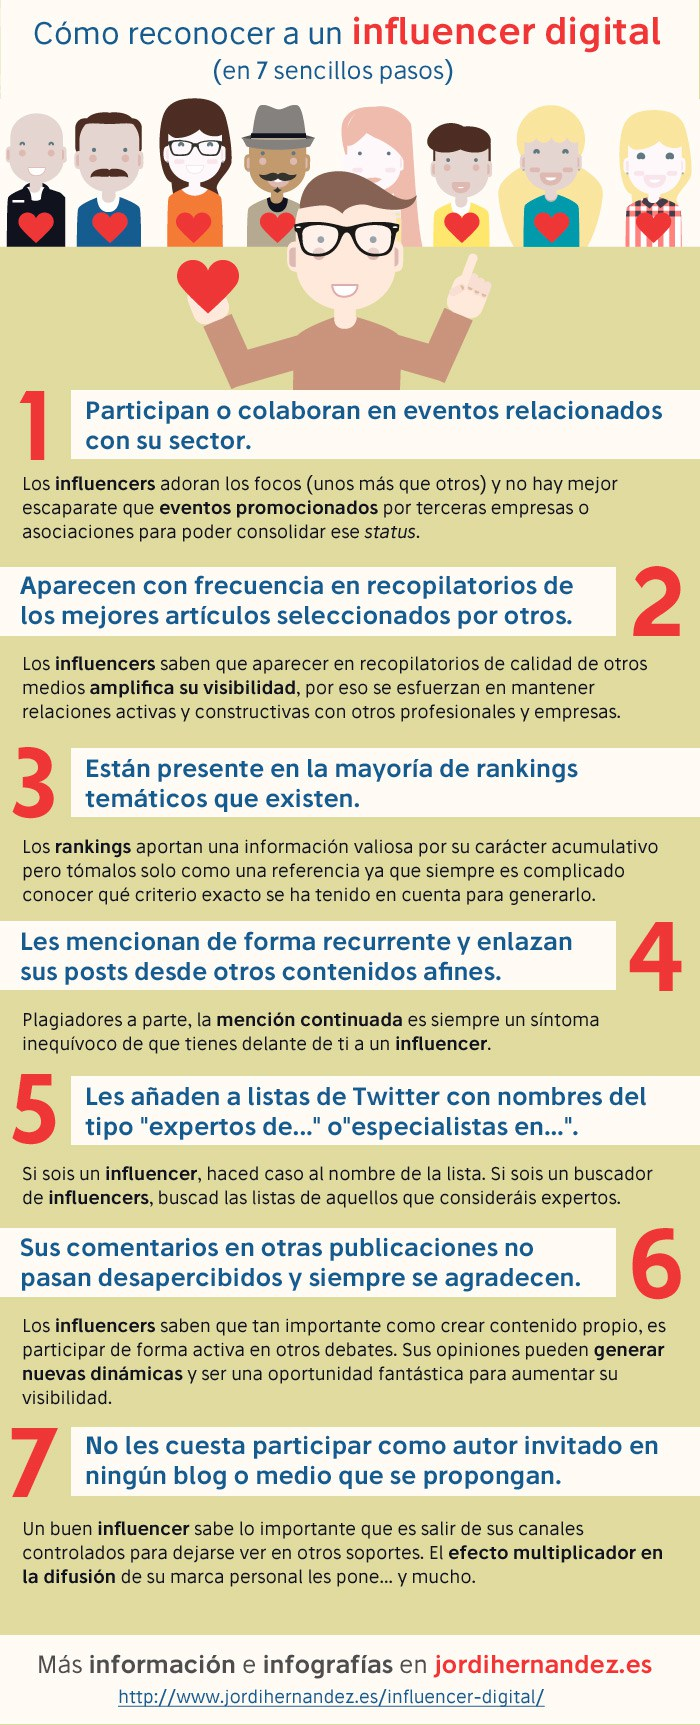 Cómo reconocer a un Influencer Digital #infografia #infographic #marketing